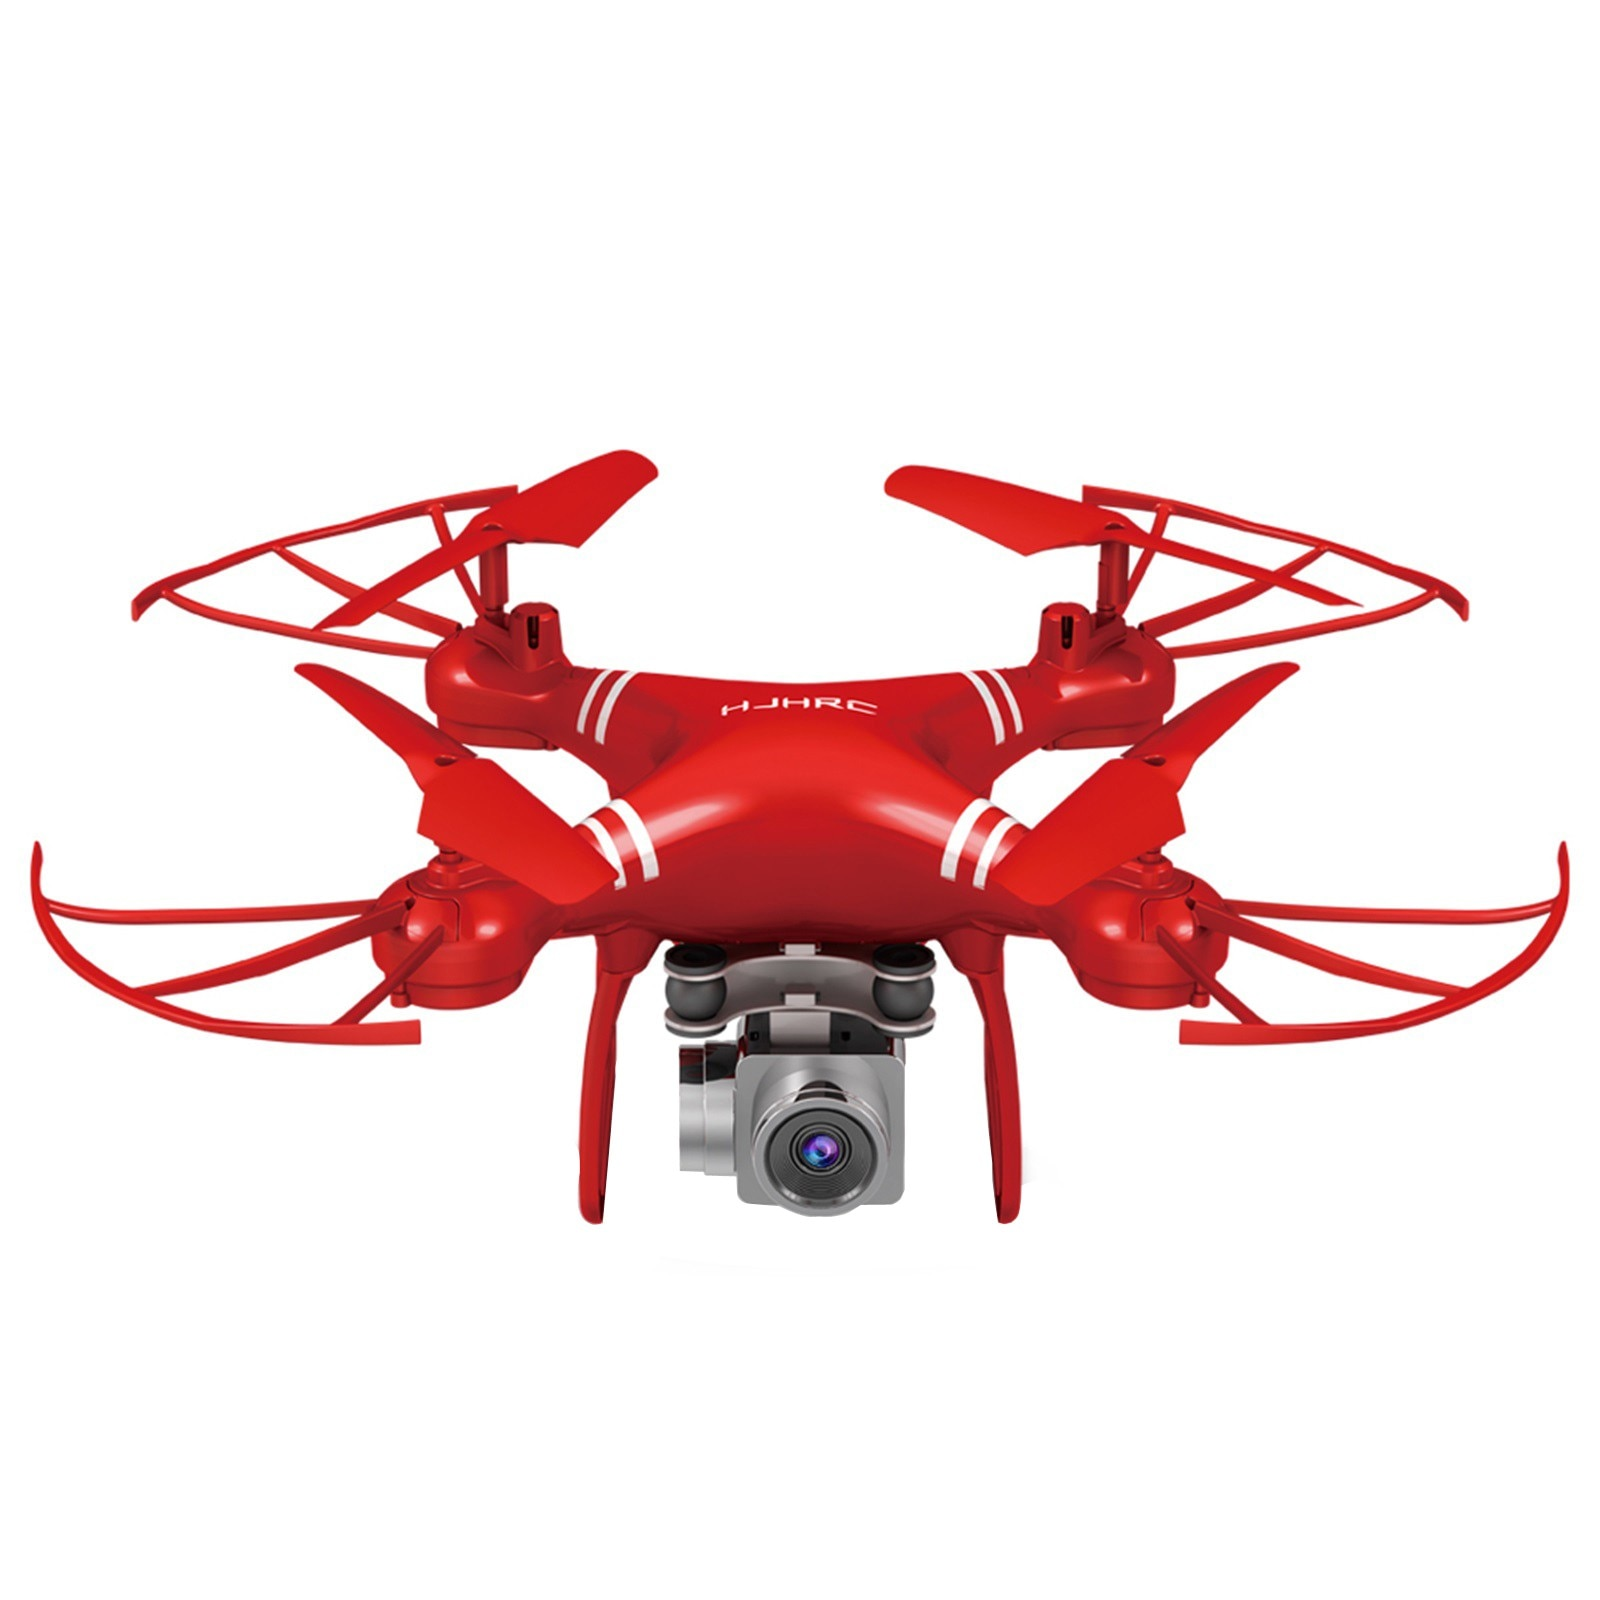 H7294537bc21444d1af89203d158ab3edm - Hjhrc Four-axis Aerial Photography Aircraft Drone With Camera Hd 4k Wifi Fpv Foldable Drone Height Holding Headless Quadcopter